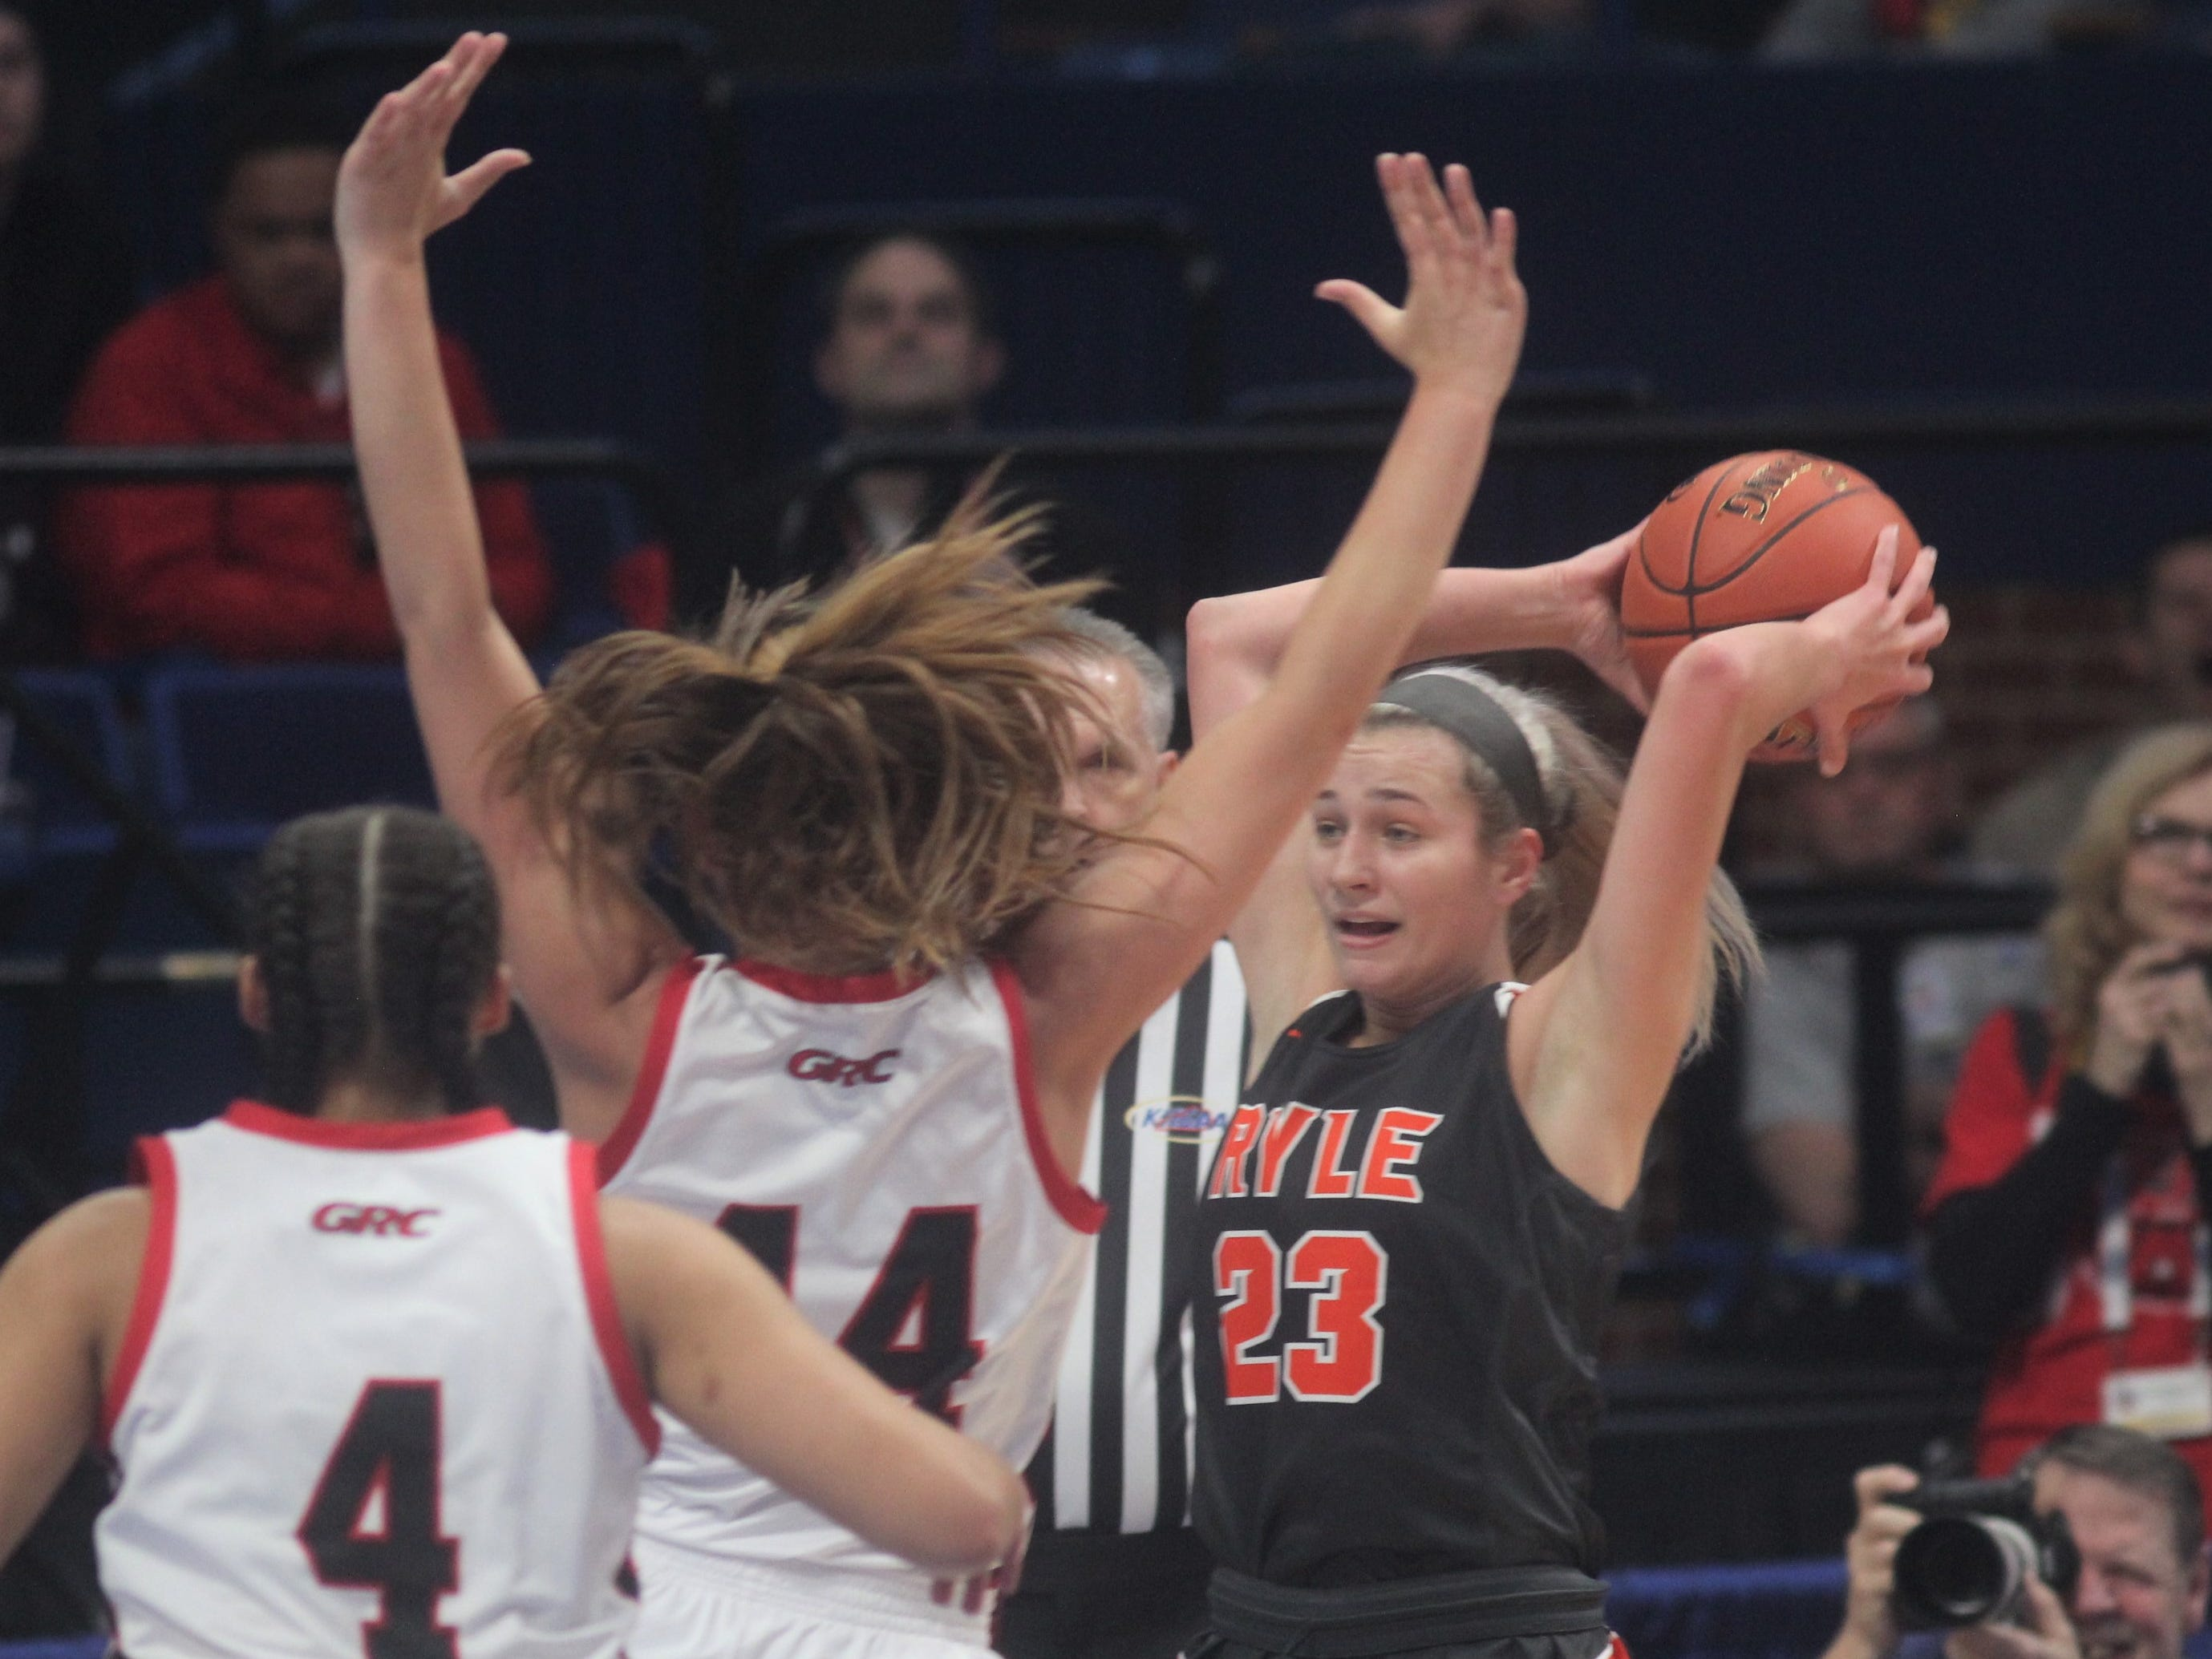 Ryle junior Maddie Scherr passes over GRC's Hayley Harrison as Ryle defeated George Rogers Clark 64-51 in the state quarterfinals of the KHSAA Sweet 16 girls basketball tournament March 15, 2019 at Rupp Arena, Lexington KY.